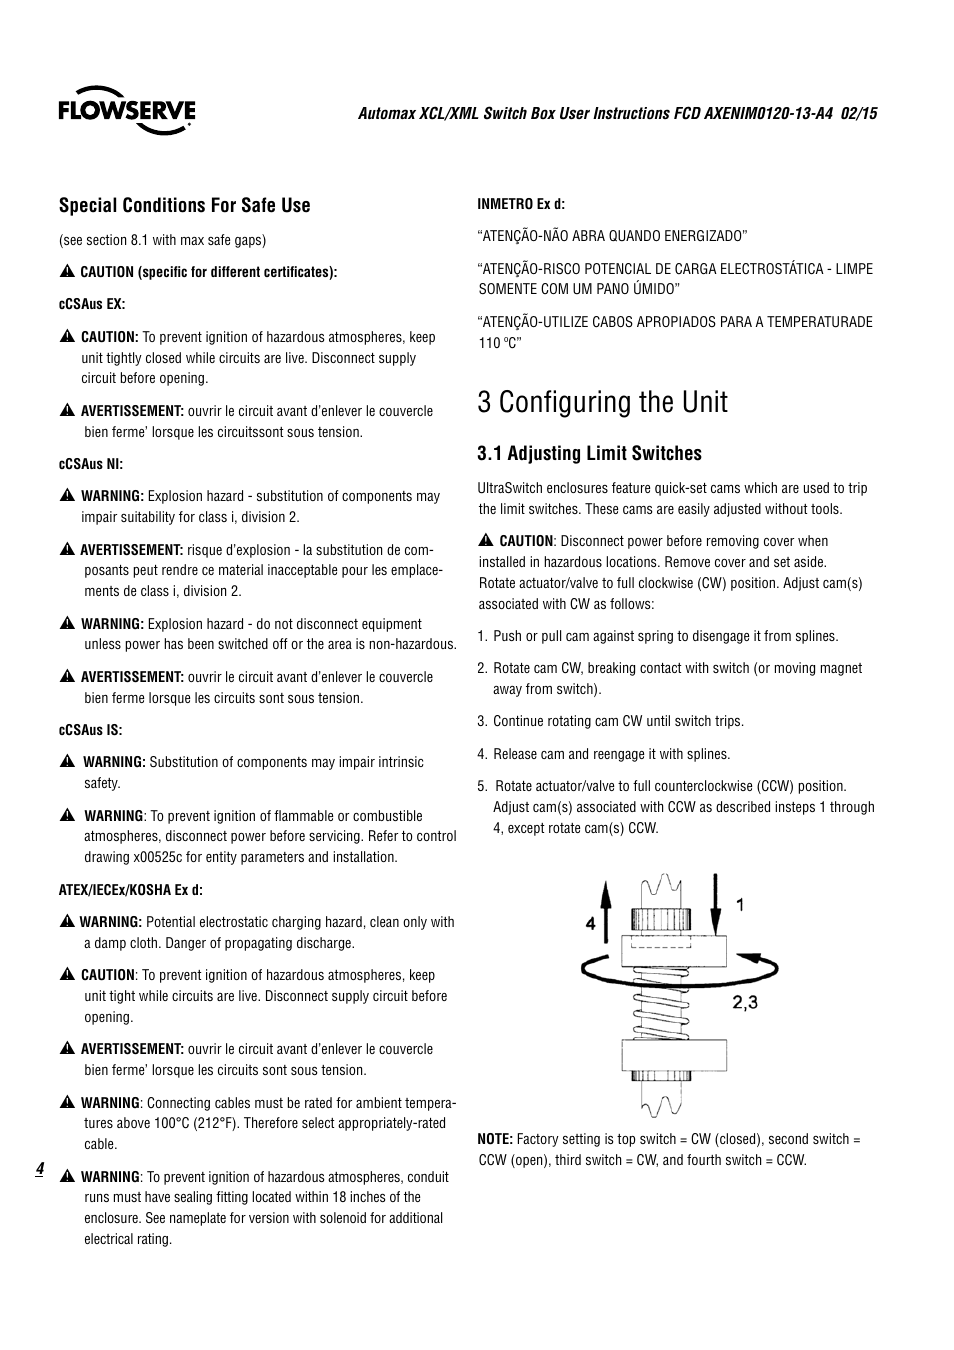 Automax Limit Switch Xcl Wiring Diagram Question About Omron 3 Configuring The Unit Flowserve Ultraswitch User Rh Manualsdir Com Momentary